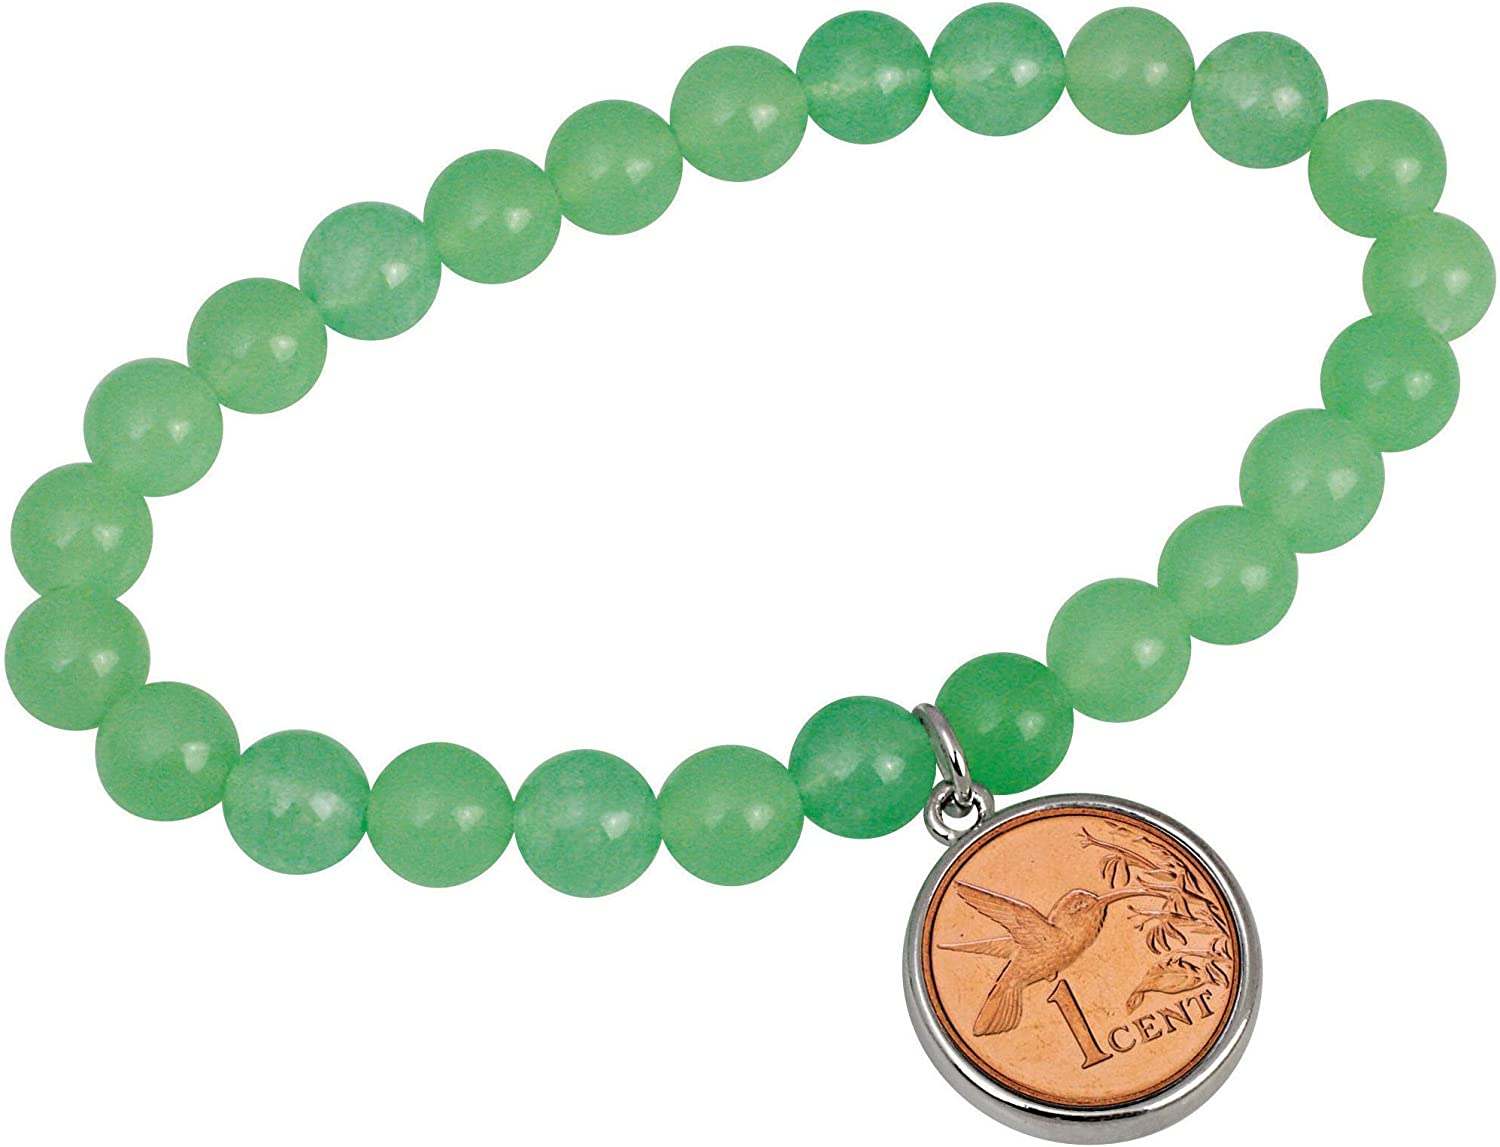 Hummingbird One Cent New products world's highest quality popular Coin trend rank Aventurine Bracelet Stretch